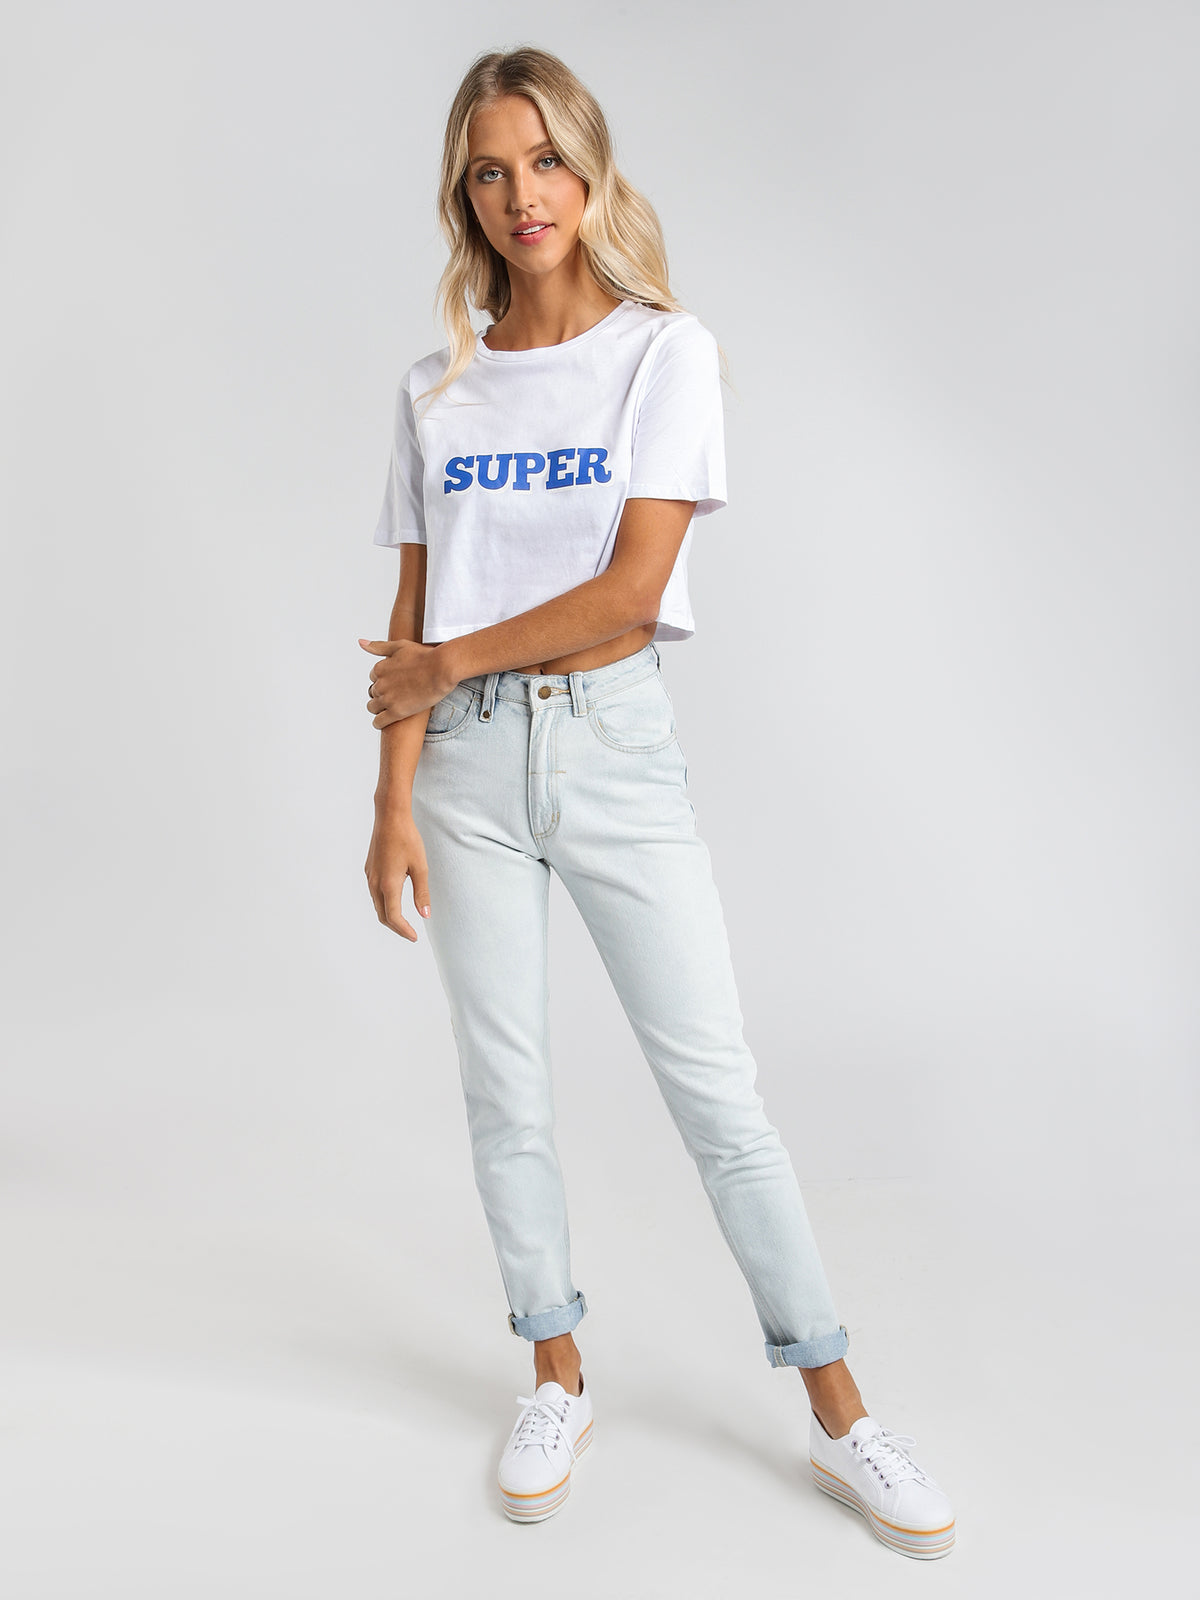 Super Cropped T-Shirt in White